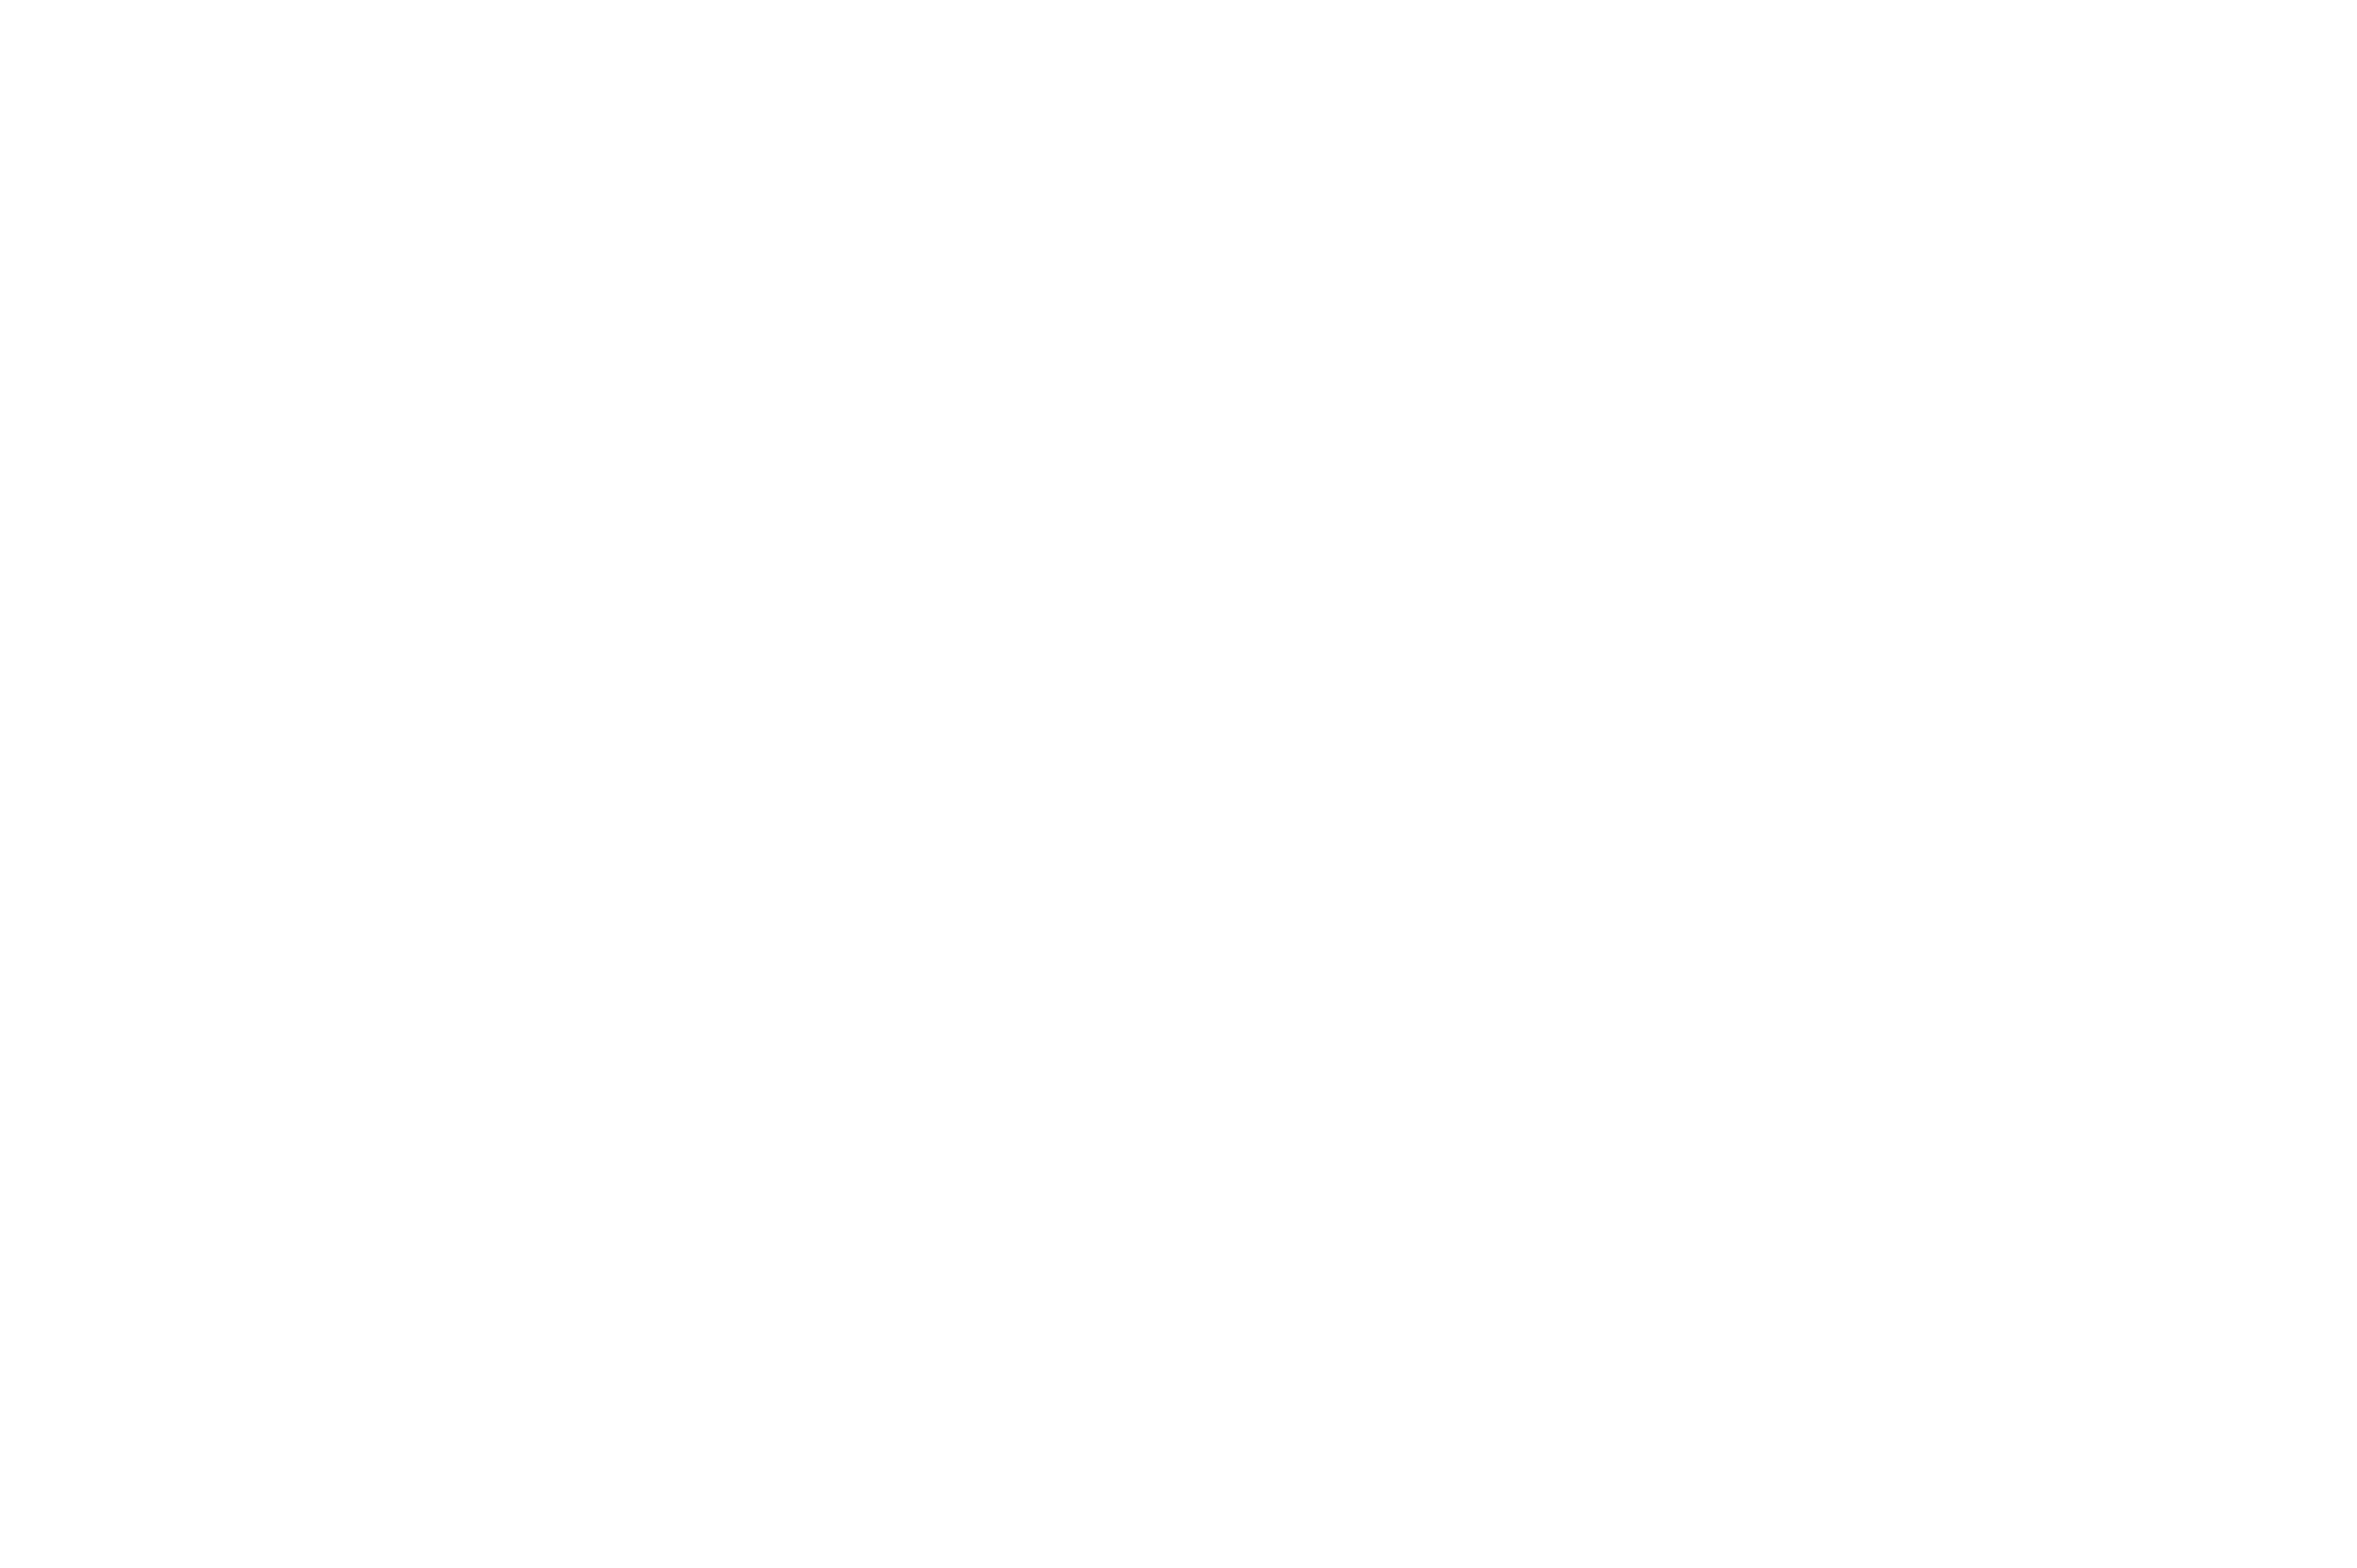 embrace-your-calling-01